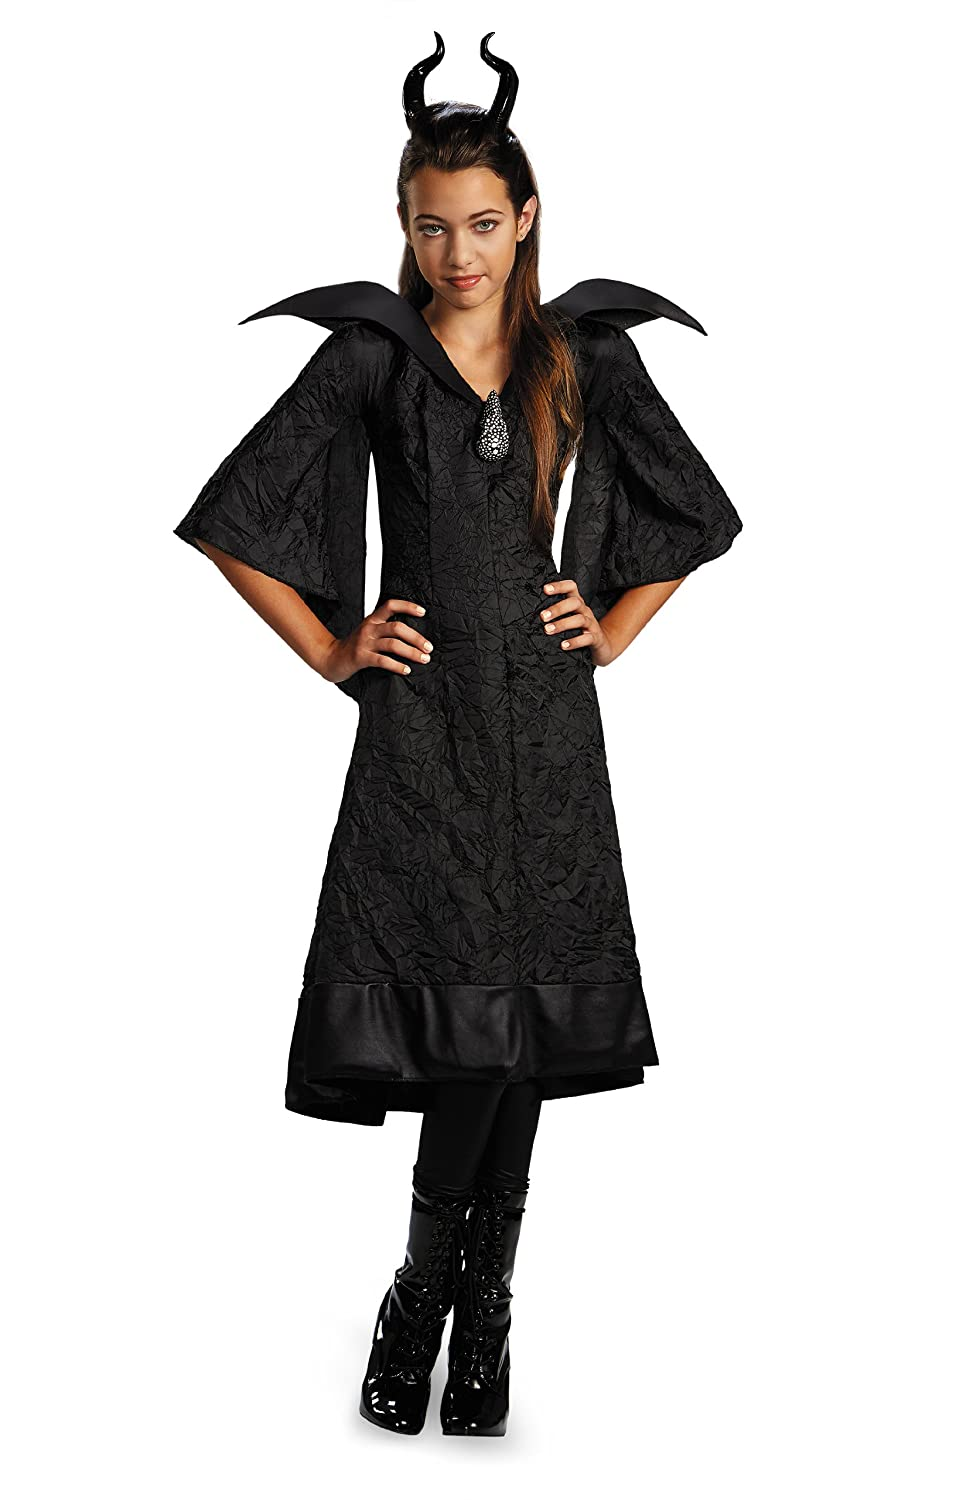 Disguise Disney Maleficent Movie Christening Black Gown Girls Classic Costume Large//10-12